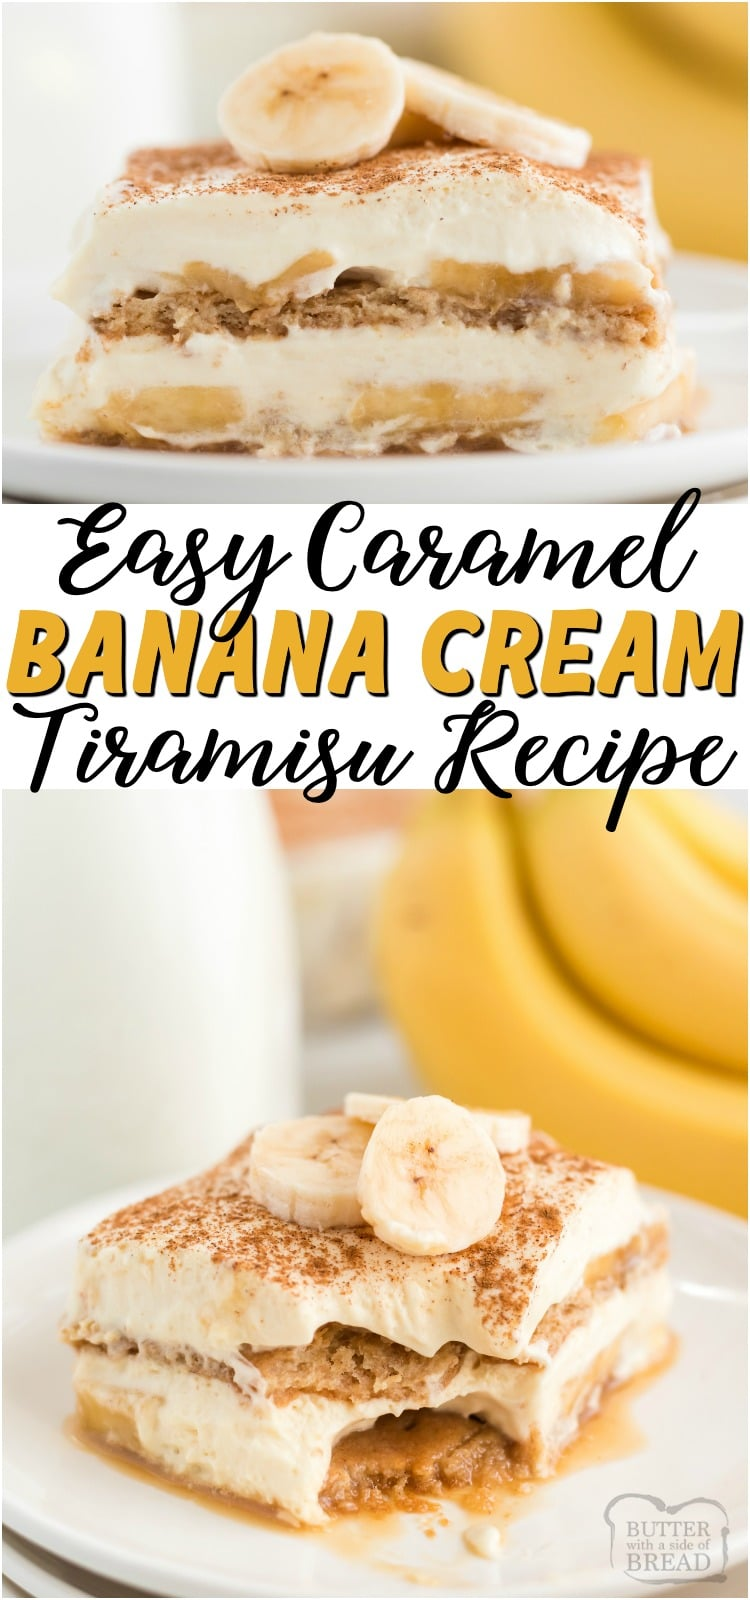 Easy recipe for Caramel Banana Cream Tiramisu that uses graham crackers and a pudding-caramel mixture in layers. Comes together so fast & is delicious!